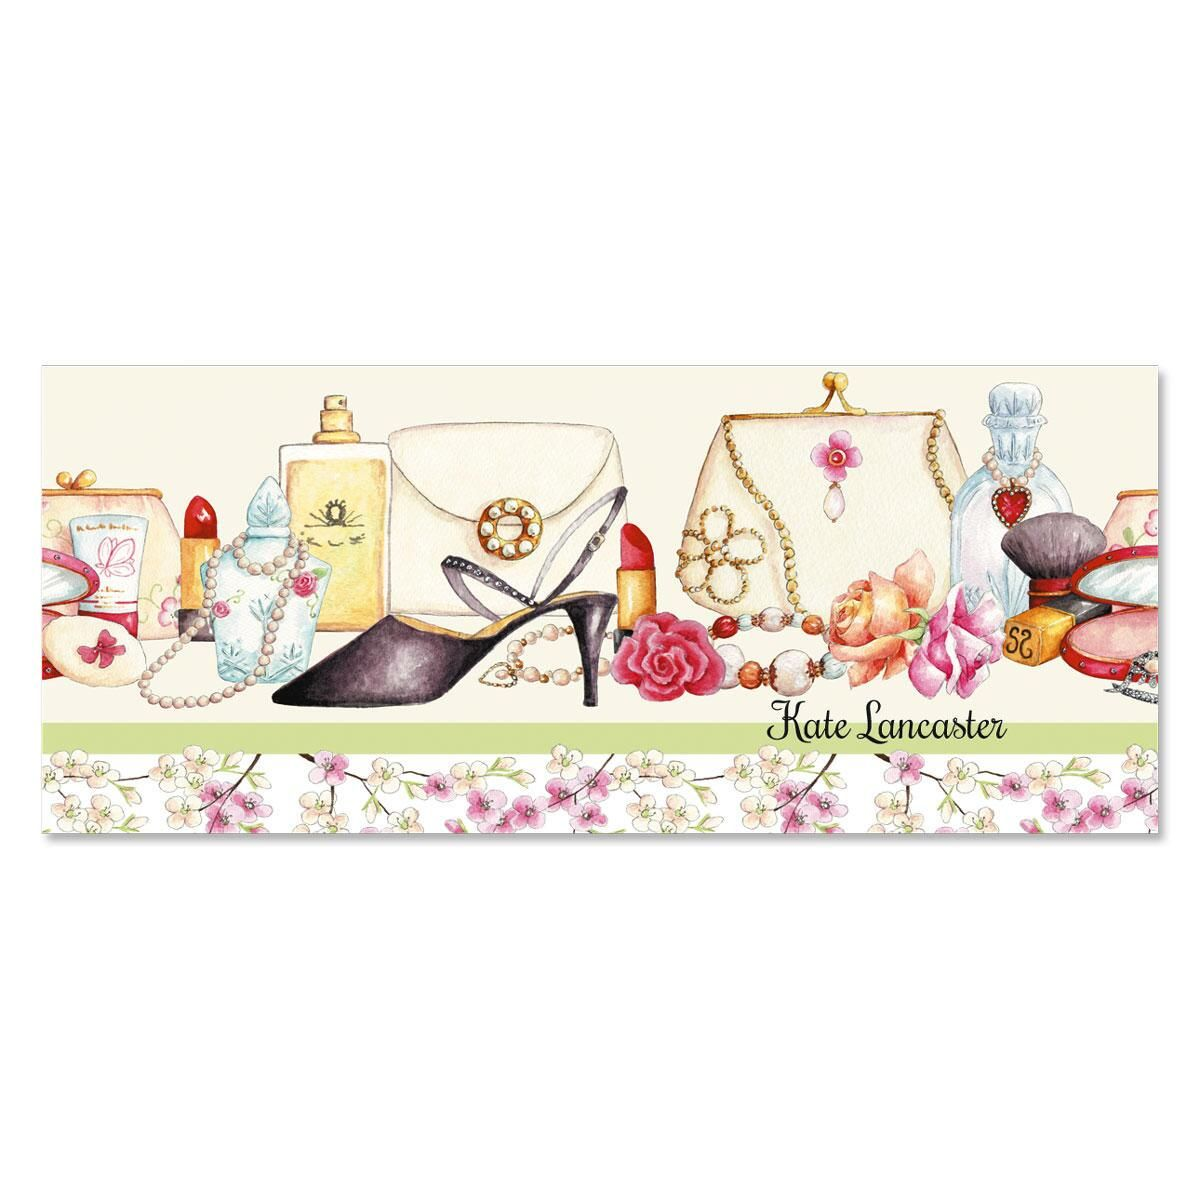 Perfume and Petals Slimline Note Cards